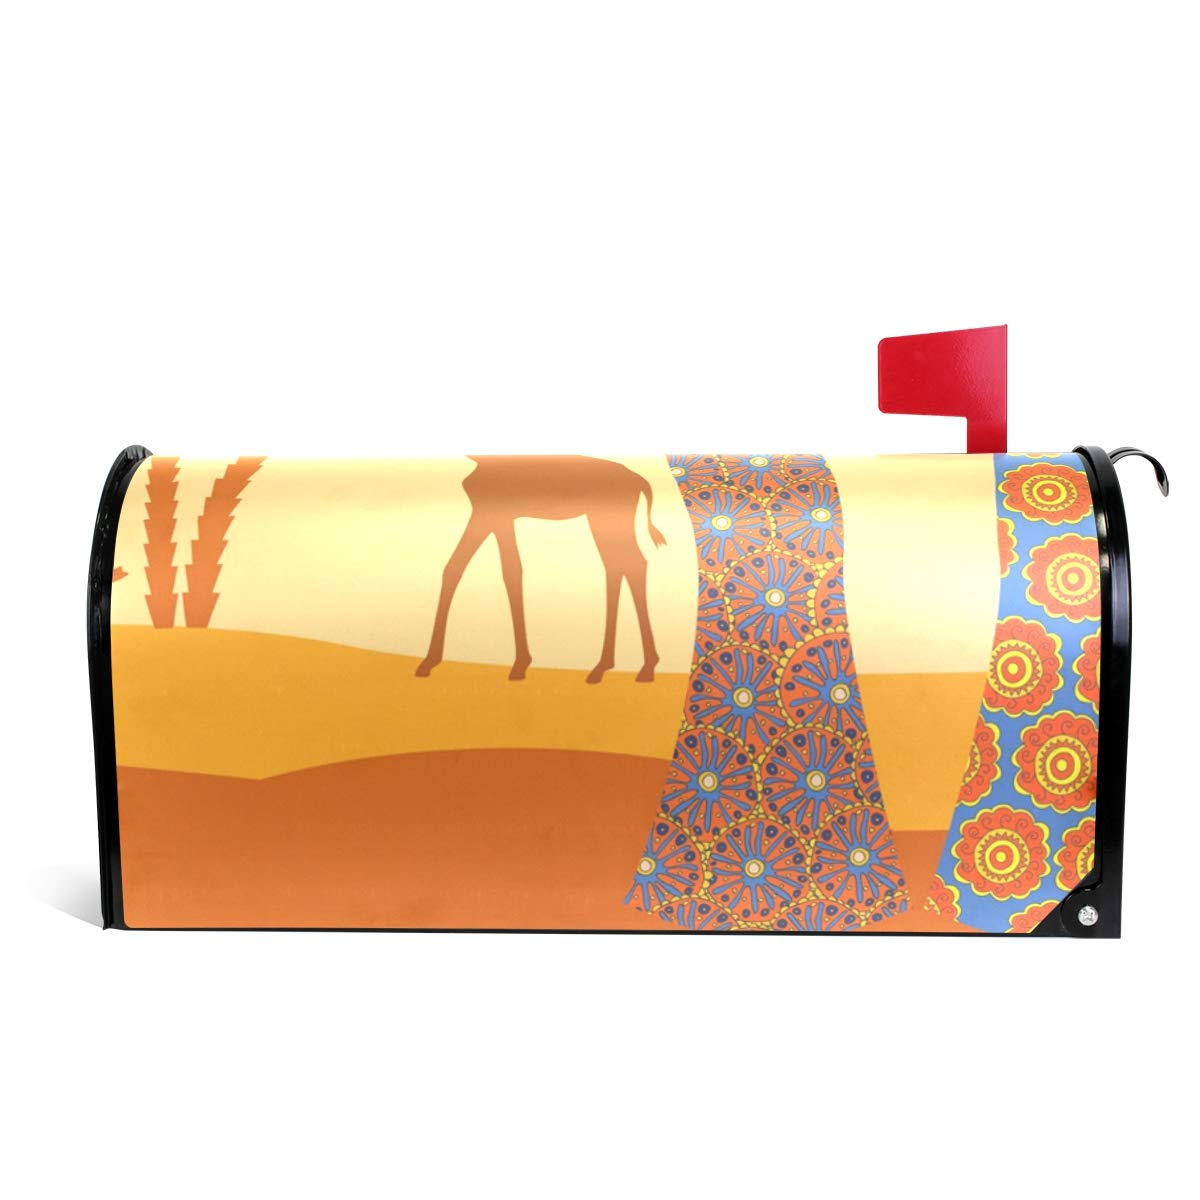 DEYYA African Women in Mountain Landscape Magnetic Mailbox Covers and Wraps Personalized Decorative Standard Size 64.7x52.8cm